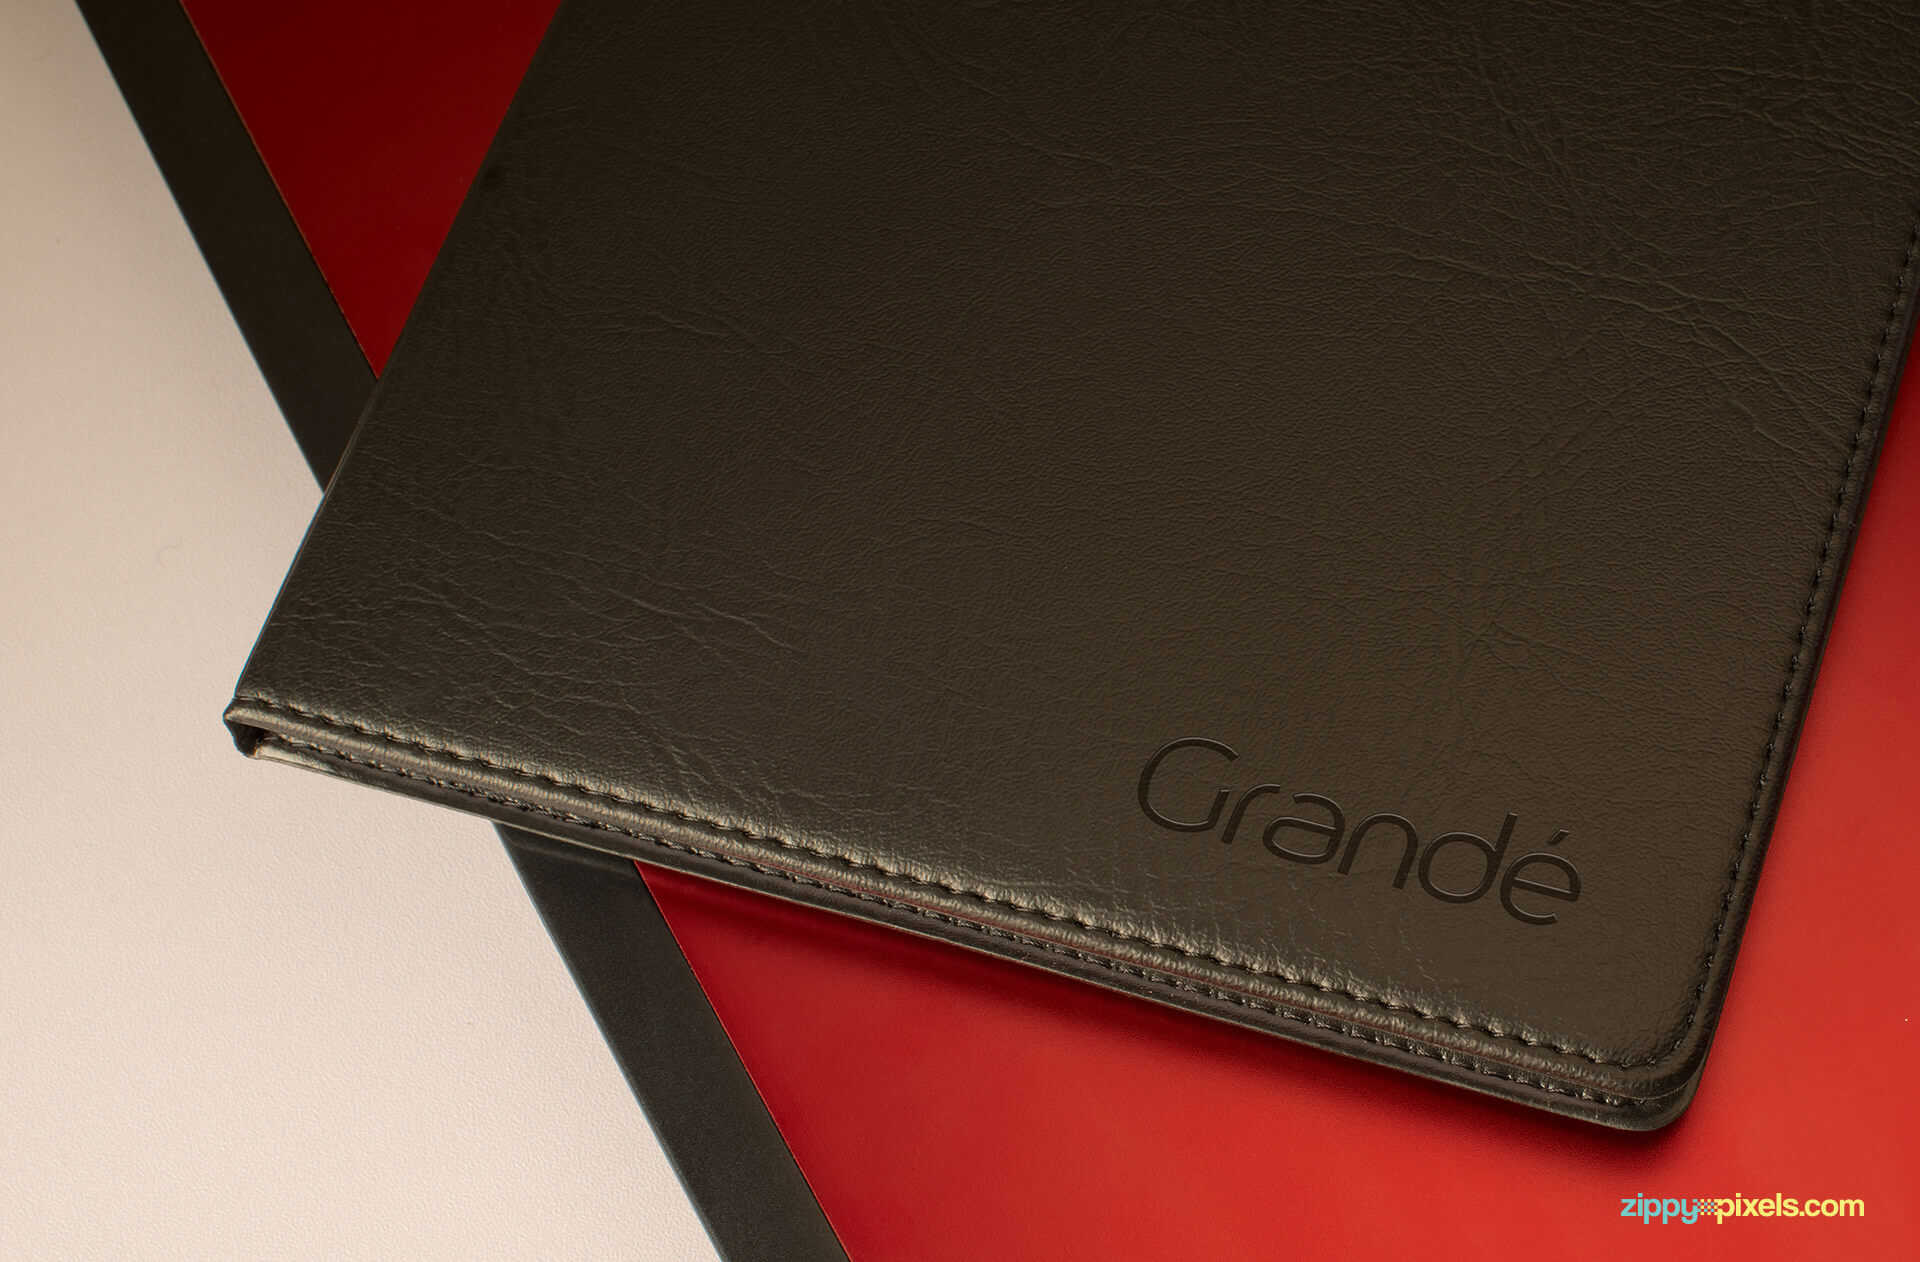 Brand Identity Mockup of a Branded Leather Diary